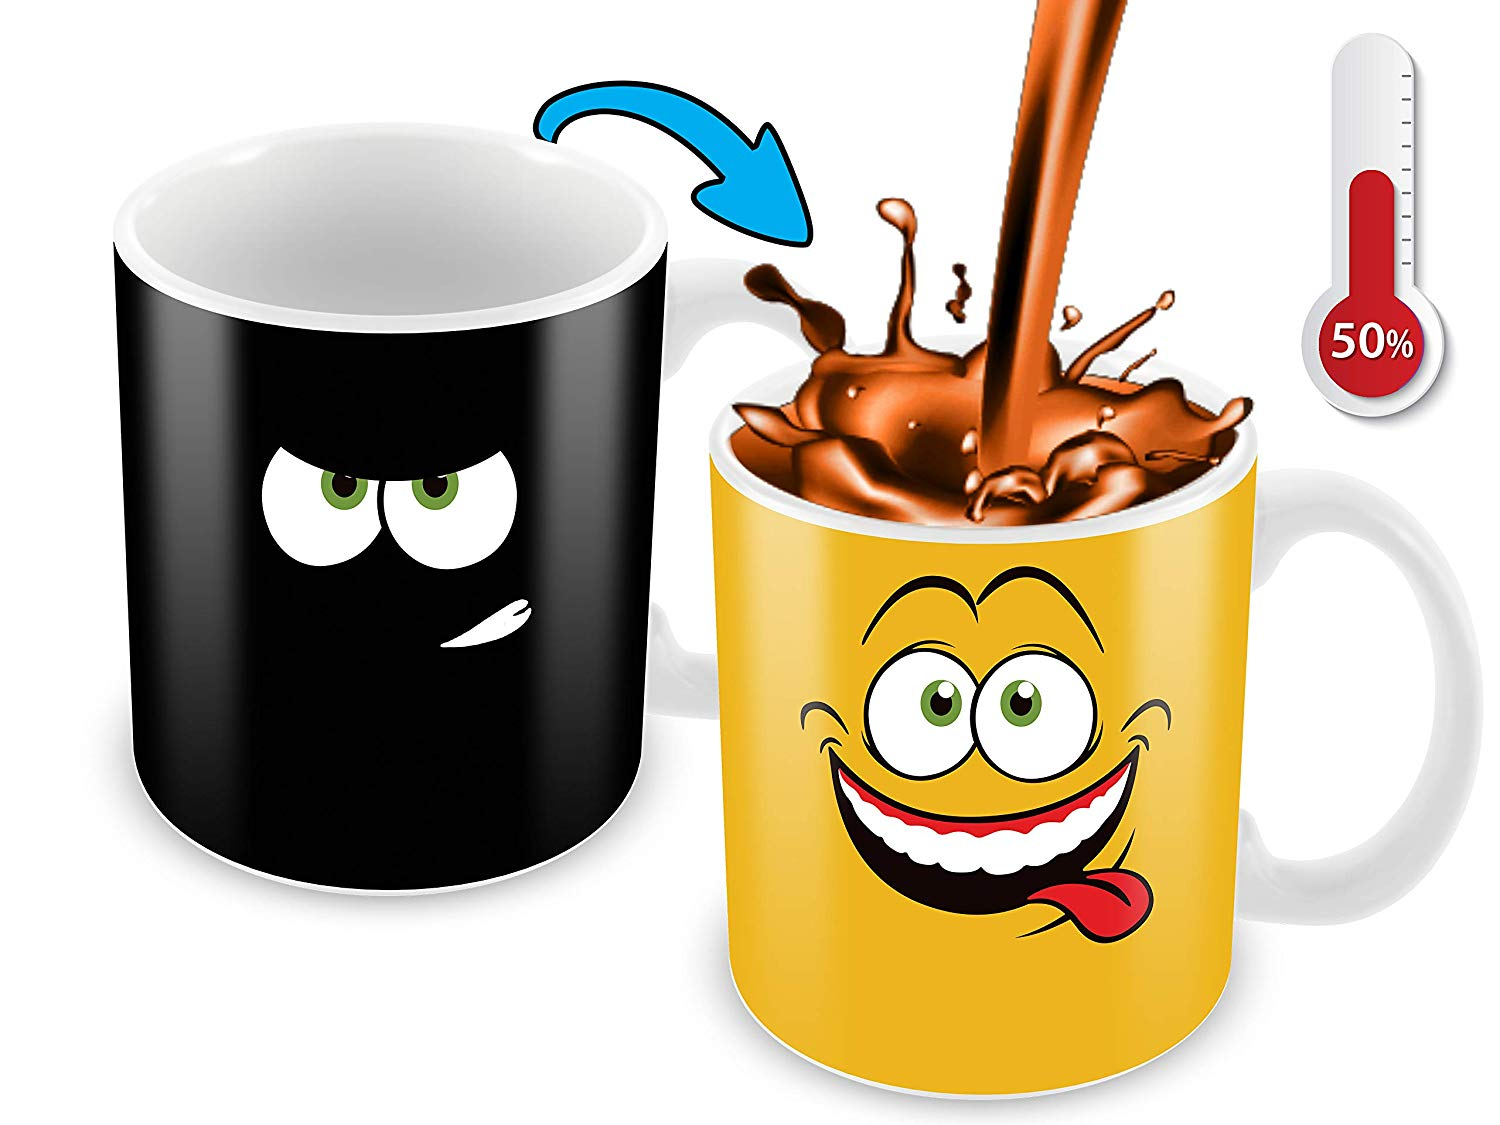 Heat Sensitive Color Changing Coffee Mug Funny Coffee Cup Yellow Drunk Funny Face Design Funny Gift Idea B079FWN7ZQ